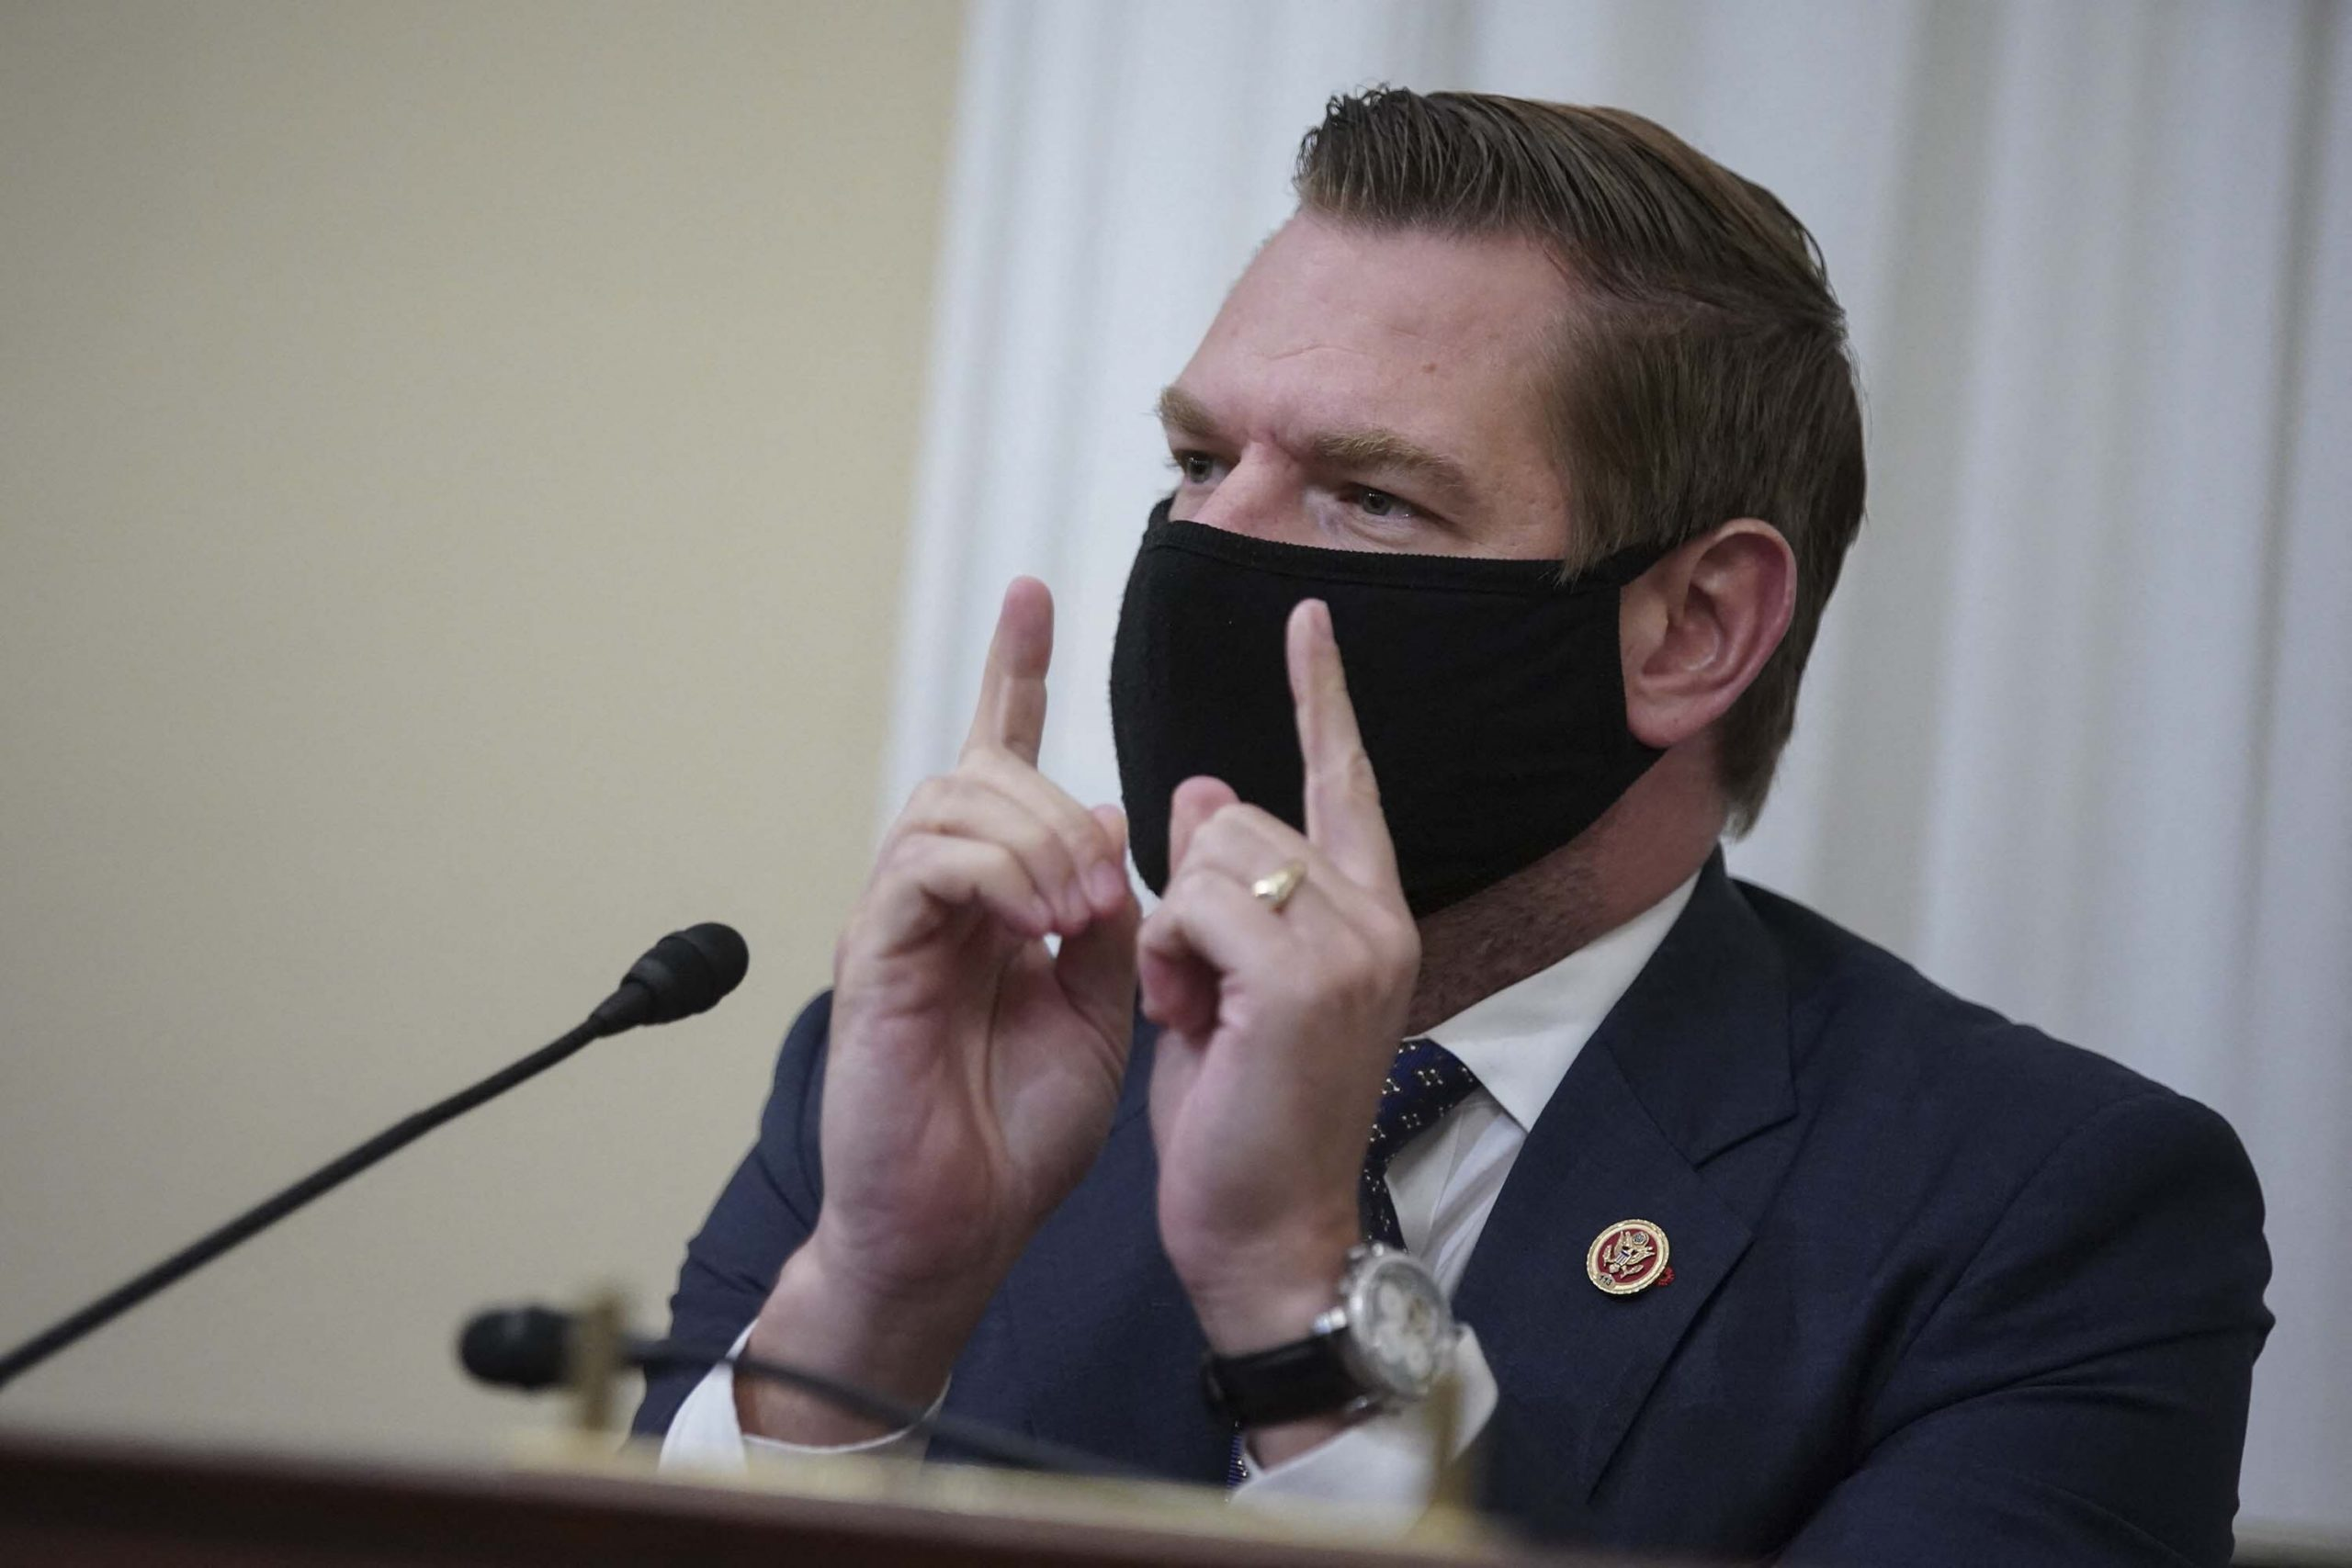 <i>AL DRAGO/POOL/AFP via Getty Images</i><br/>Rep. Eric Swalwell falsely said Mitch McConnell only got 'serious' about Covid-19 vaccines after stock market dip.